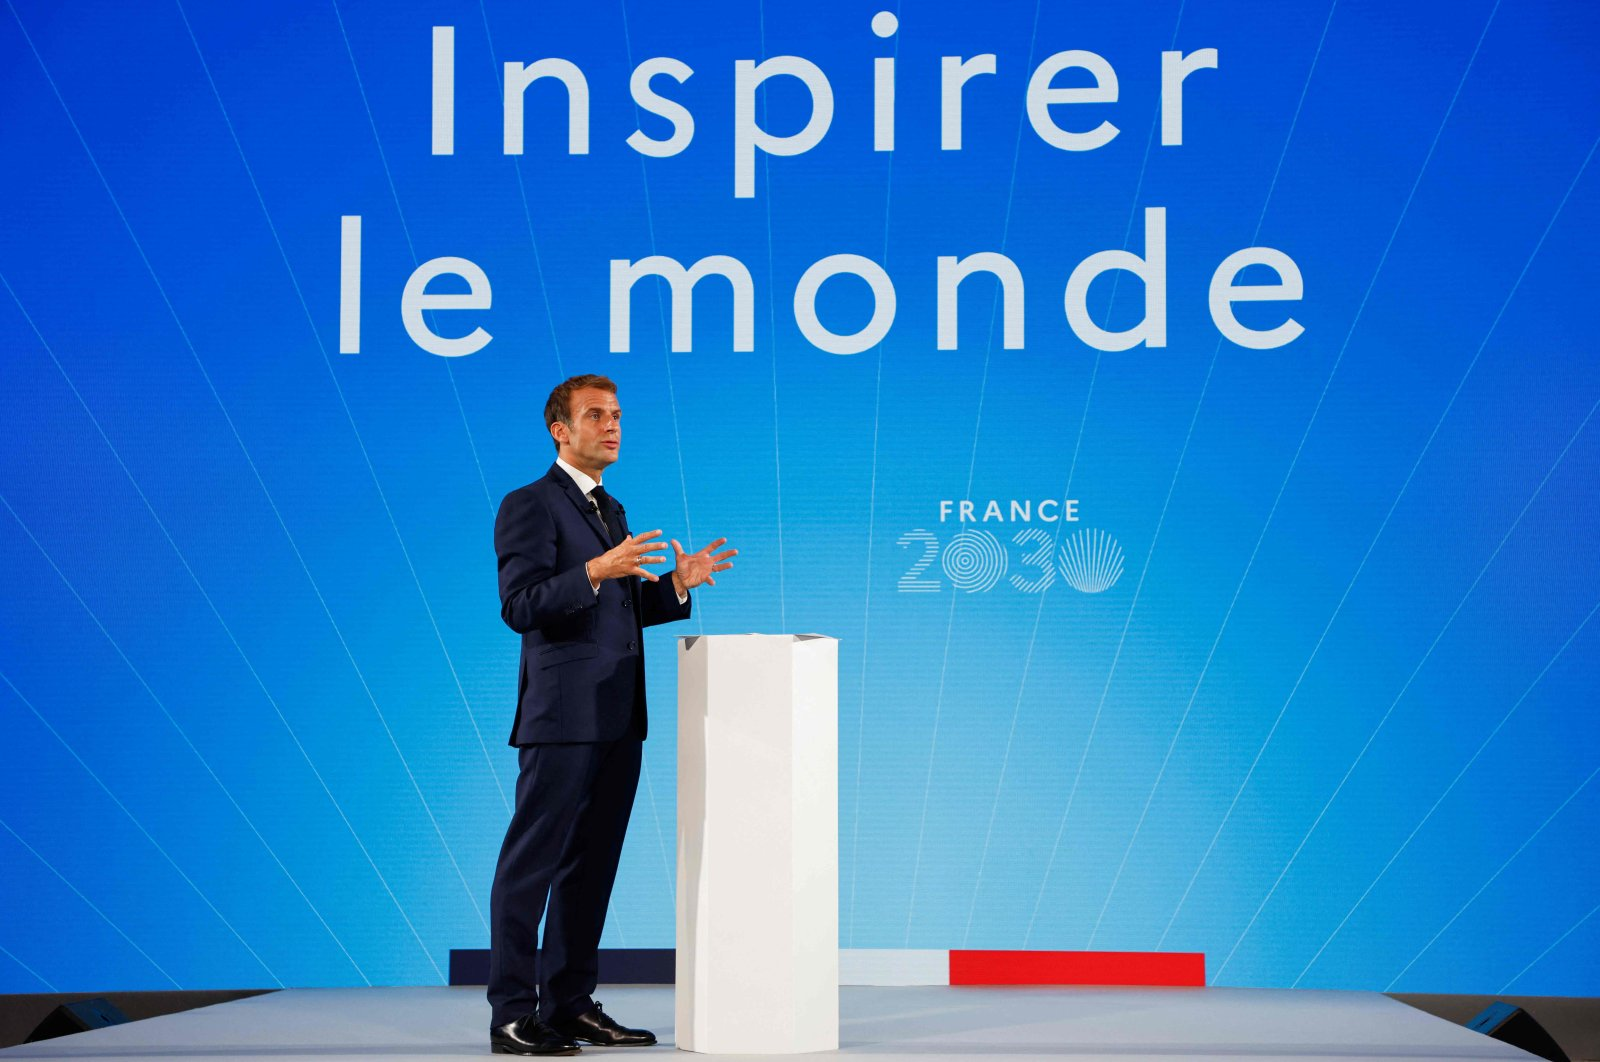 """French President Emmanuel Macron gestures as he speaks in front of a screen with the words reading """"Inspire the world"""" during the presentation of the """"France 2030"""" investment plan at The Elysee Presidential Palace in Paris, France, Oct. 12, 2021. (AFP Photo)"""